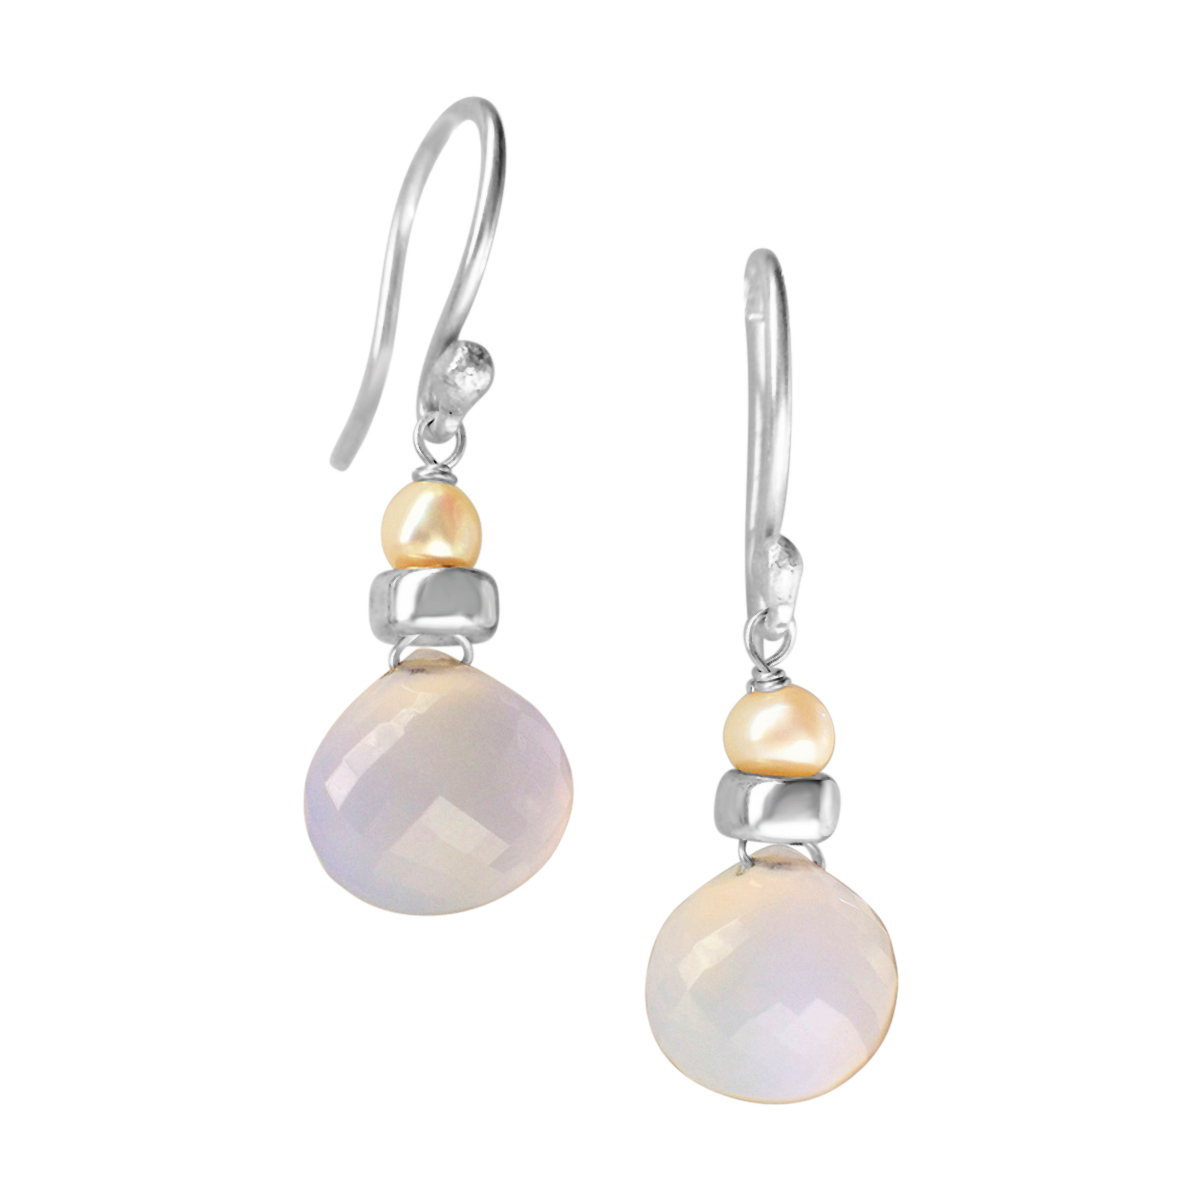 Perfume Bottle chalcedony earrings